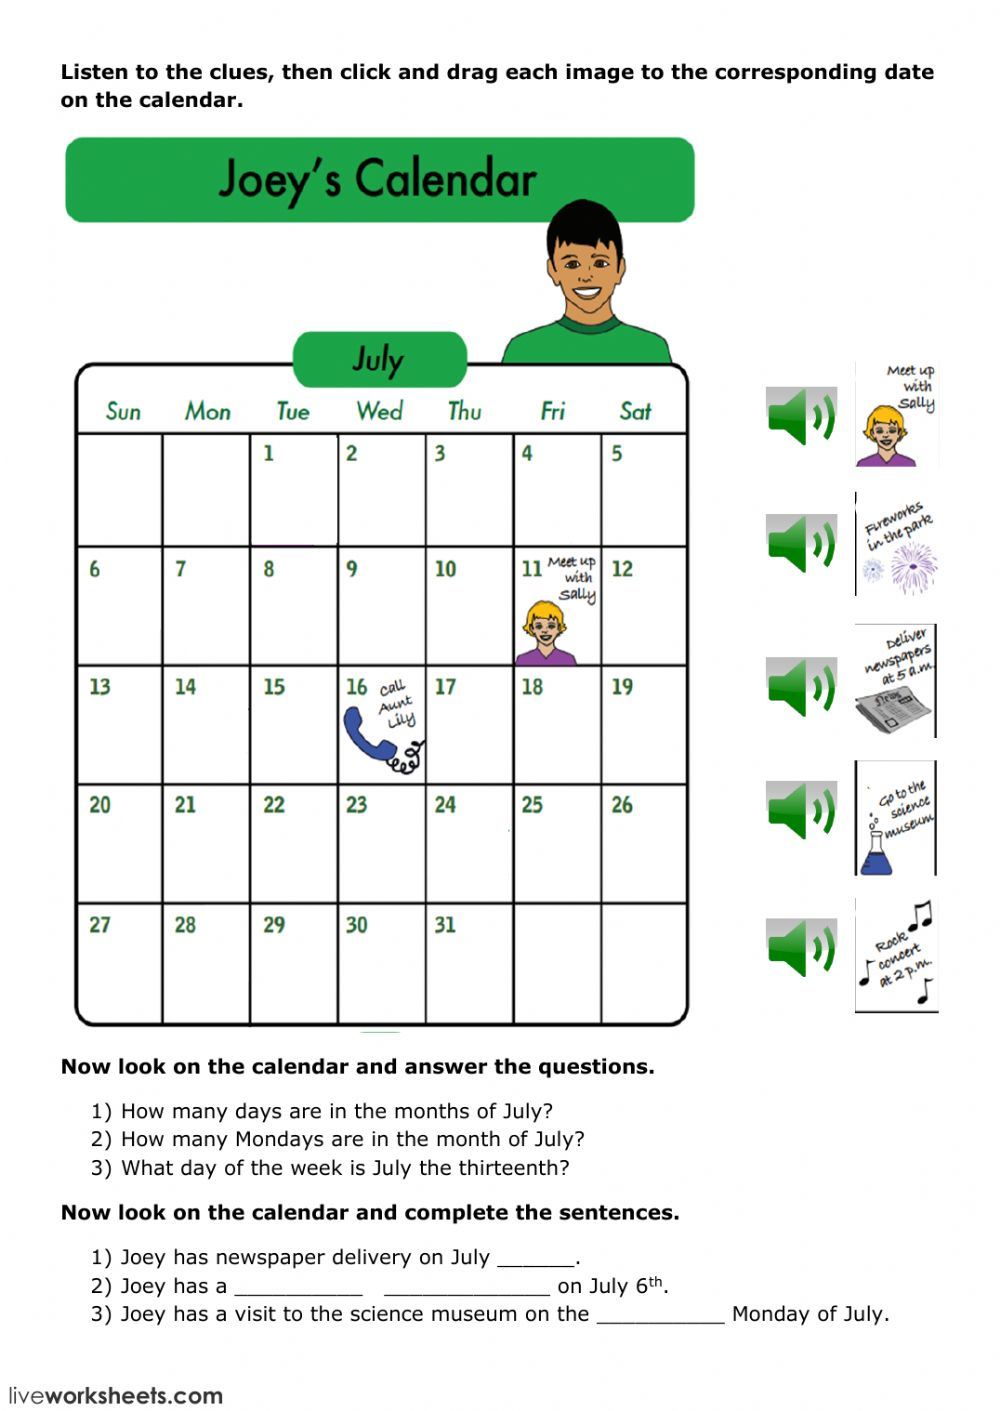 medium resolution of Joey's Calendar worksheet